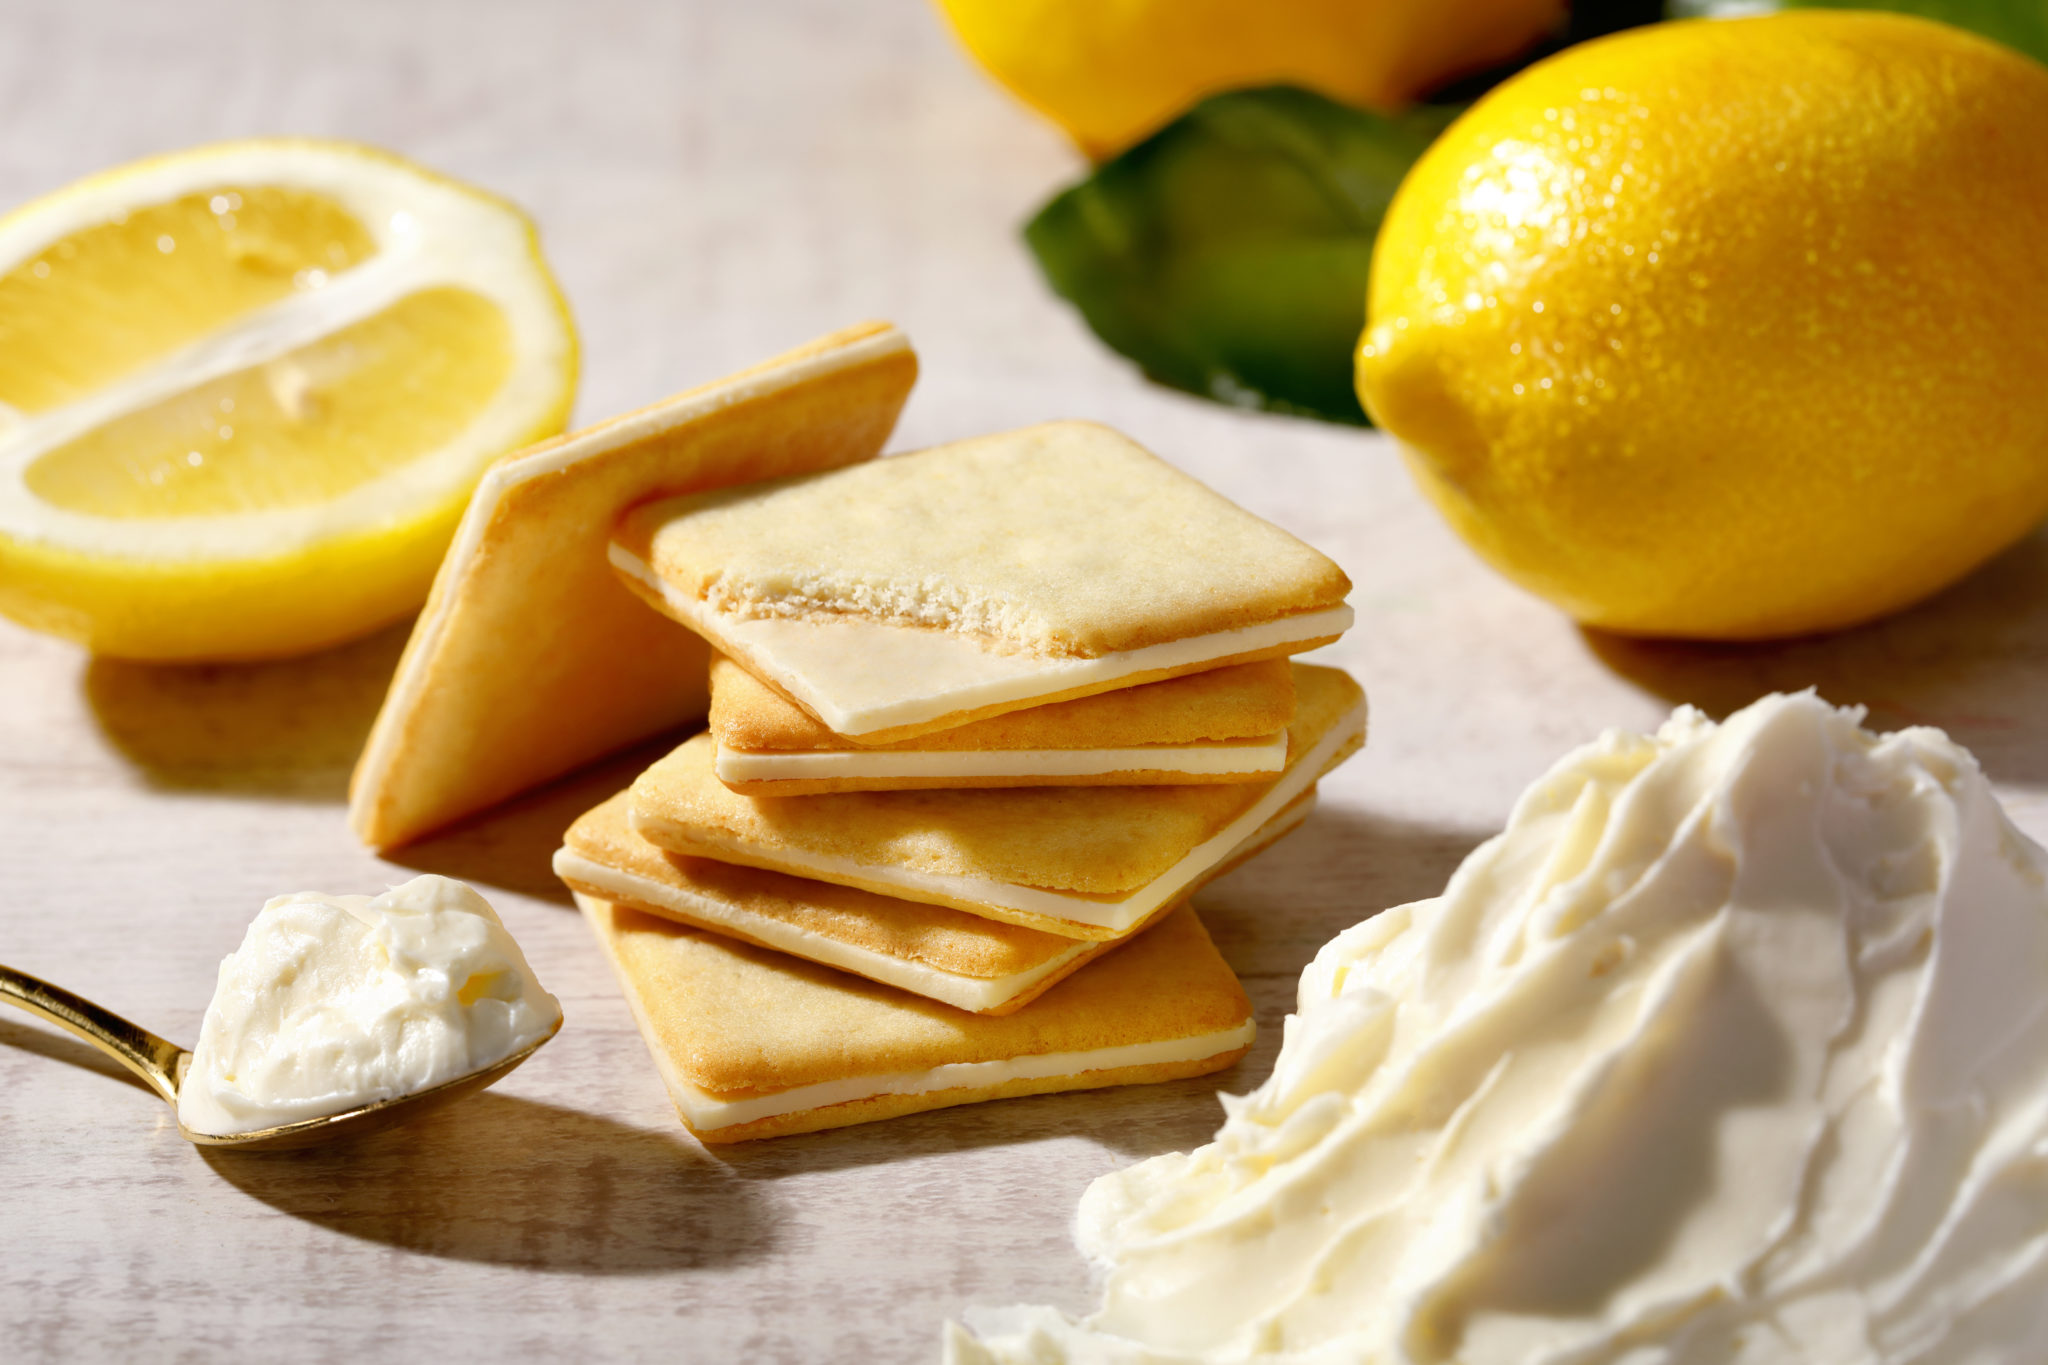 Lemon & Cream Cheese